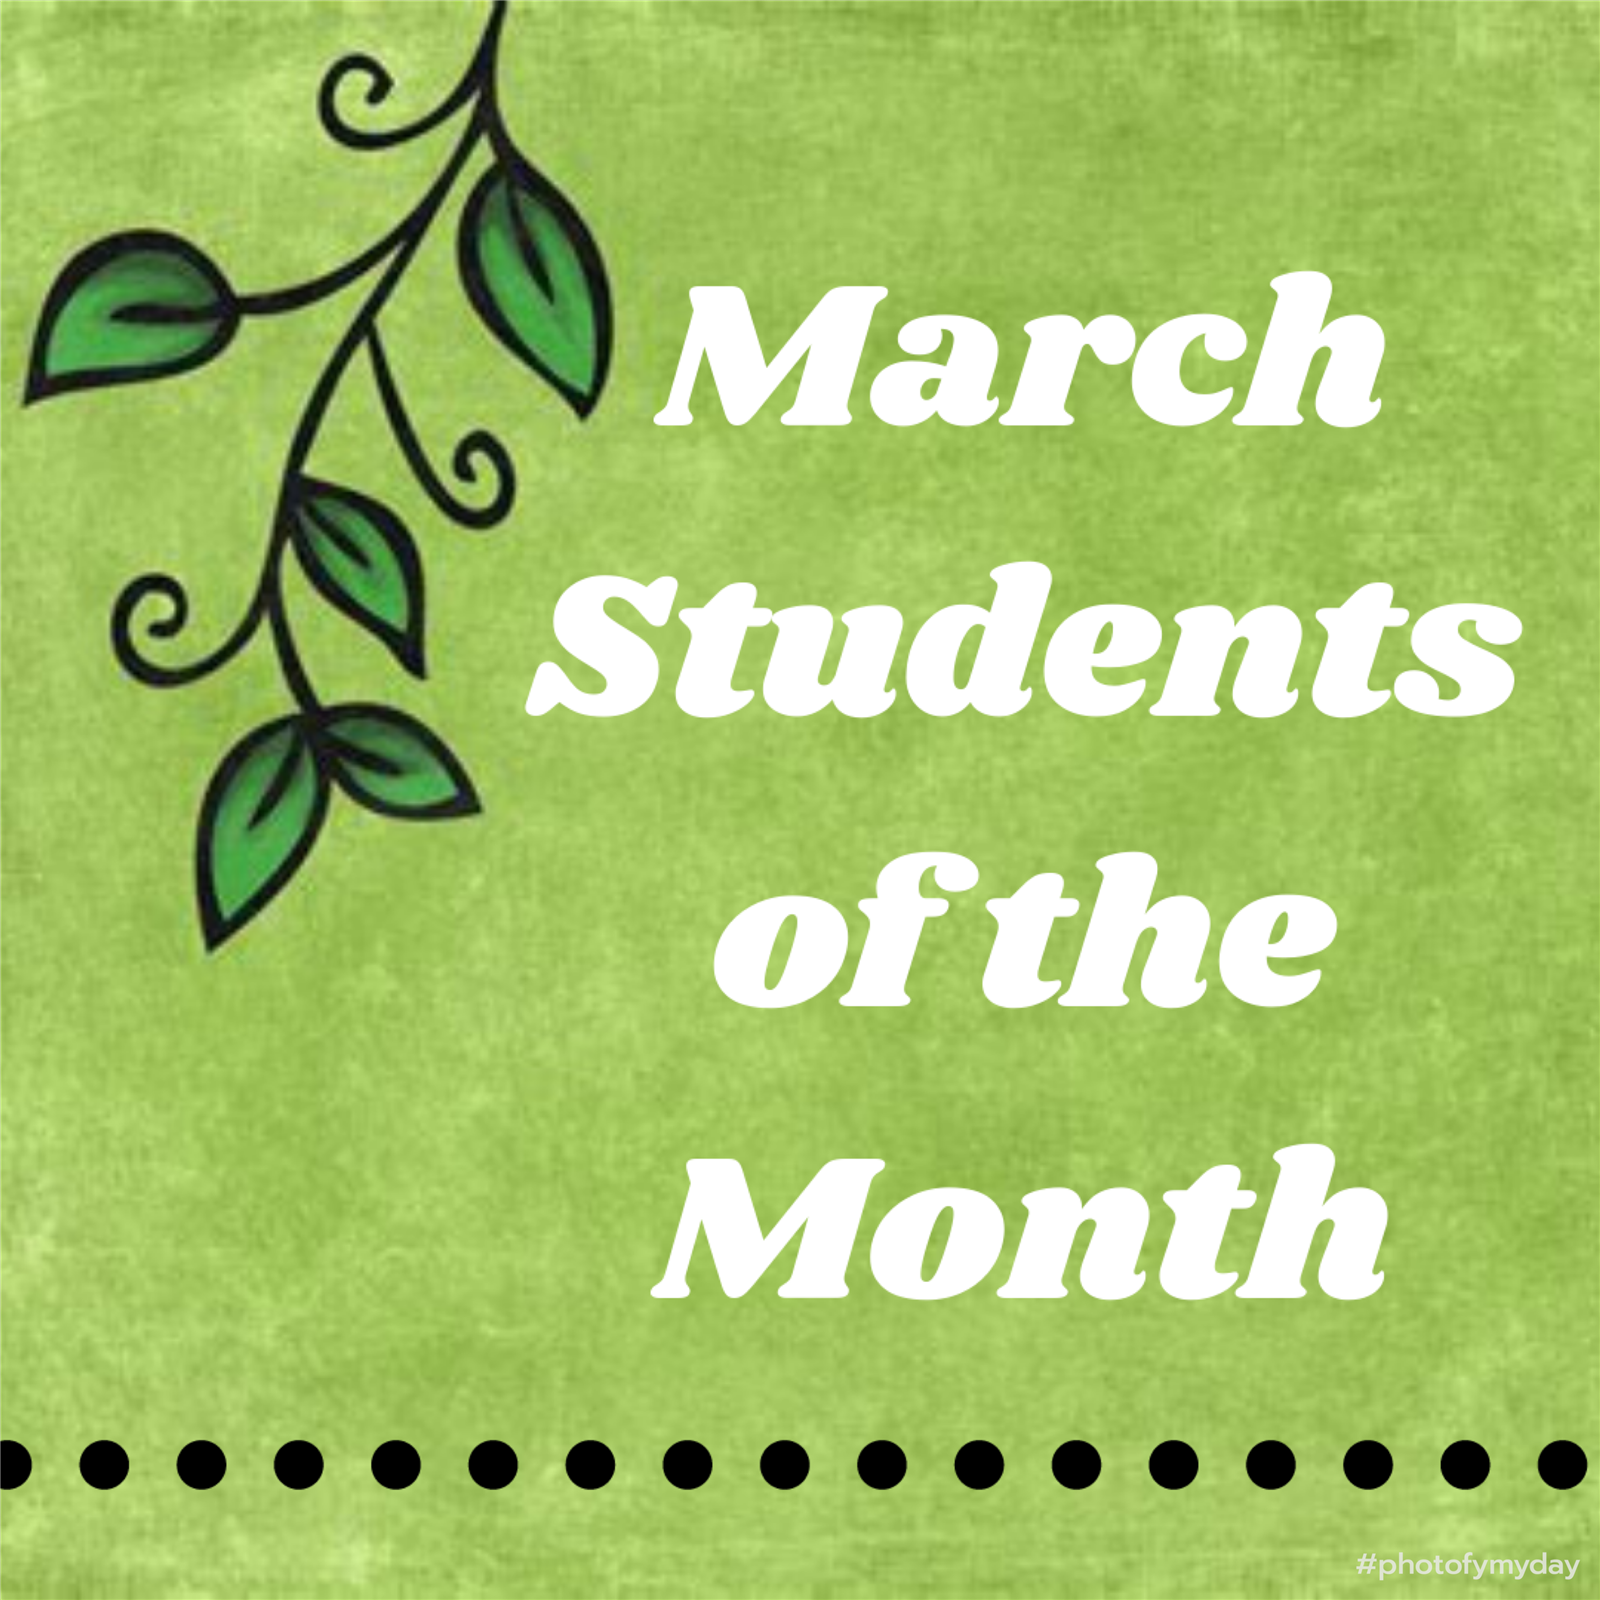 March Students of the Month on a green background